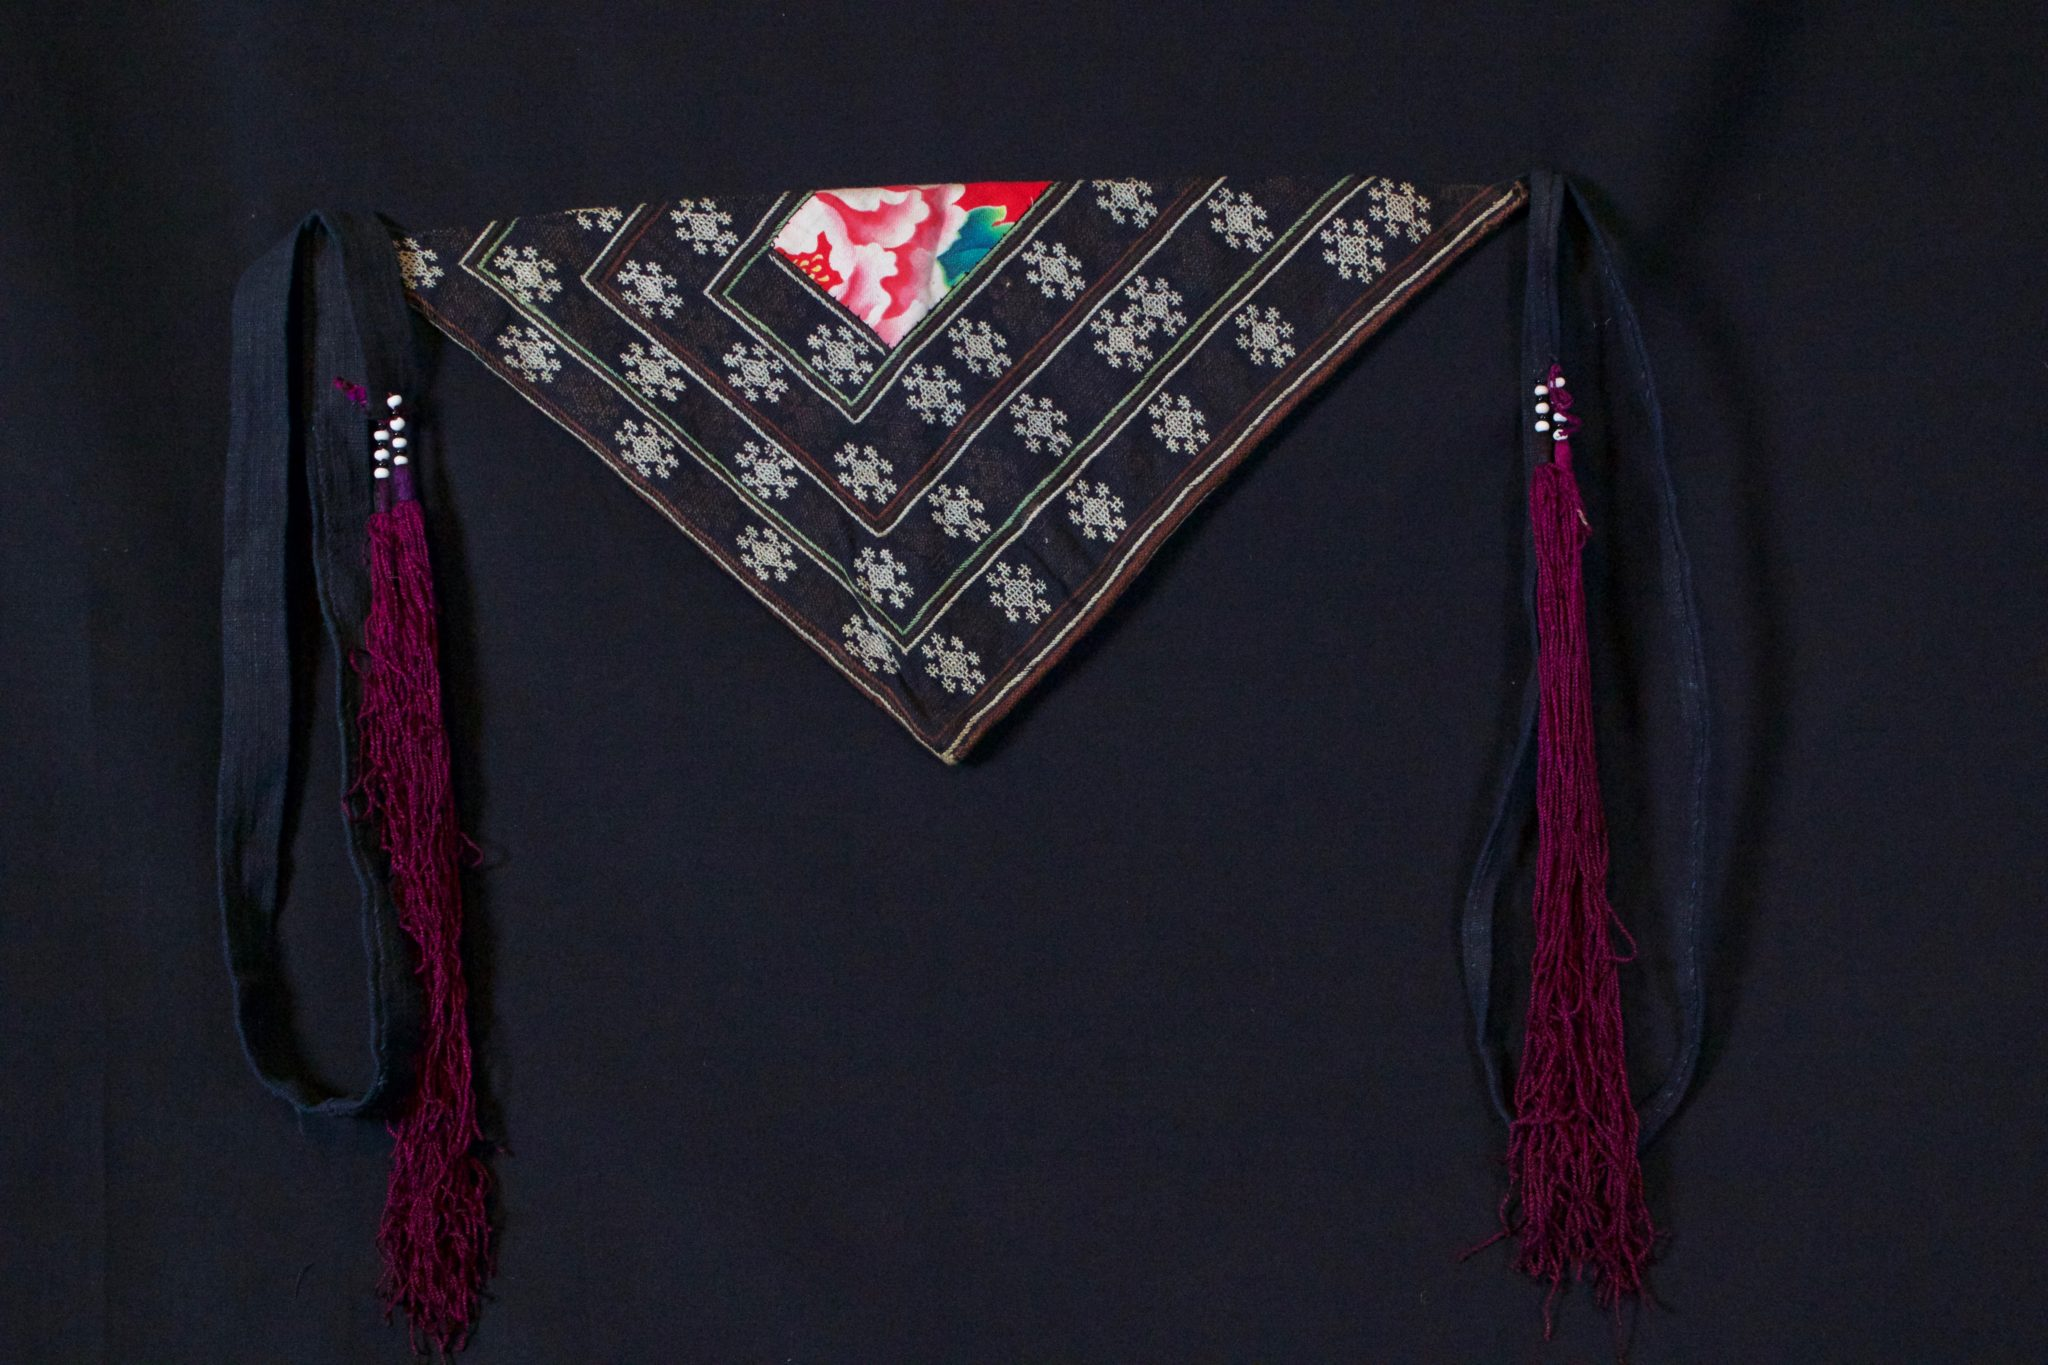 "Shaman's Ritual Costume Headscarf (from full costume - see above image), Shaman Priest's Costume, complete outfit; Robe, Skirt, Belt and Scarf, Vietnam, Tao people, Mid 20th c, Cotton, silk embroidery. Worn by shaman/priests for all ceremonies. (118"" x 9 ½"" scarf)"